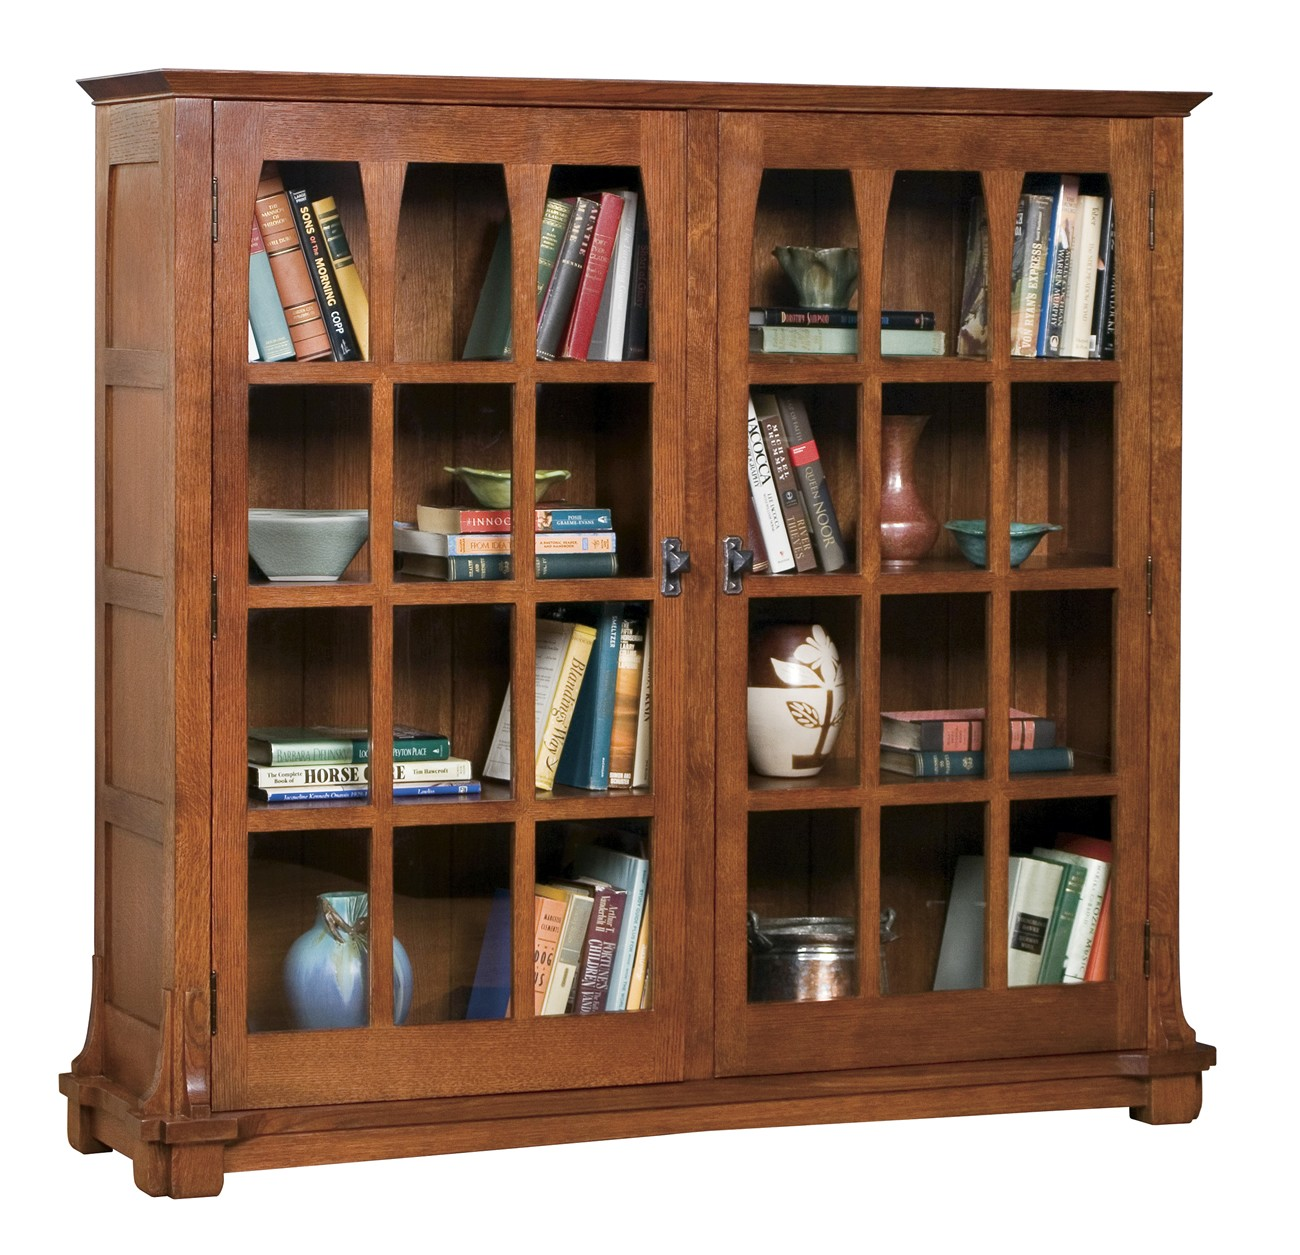 89-510-032 Gus Commemorative Bookcase